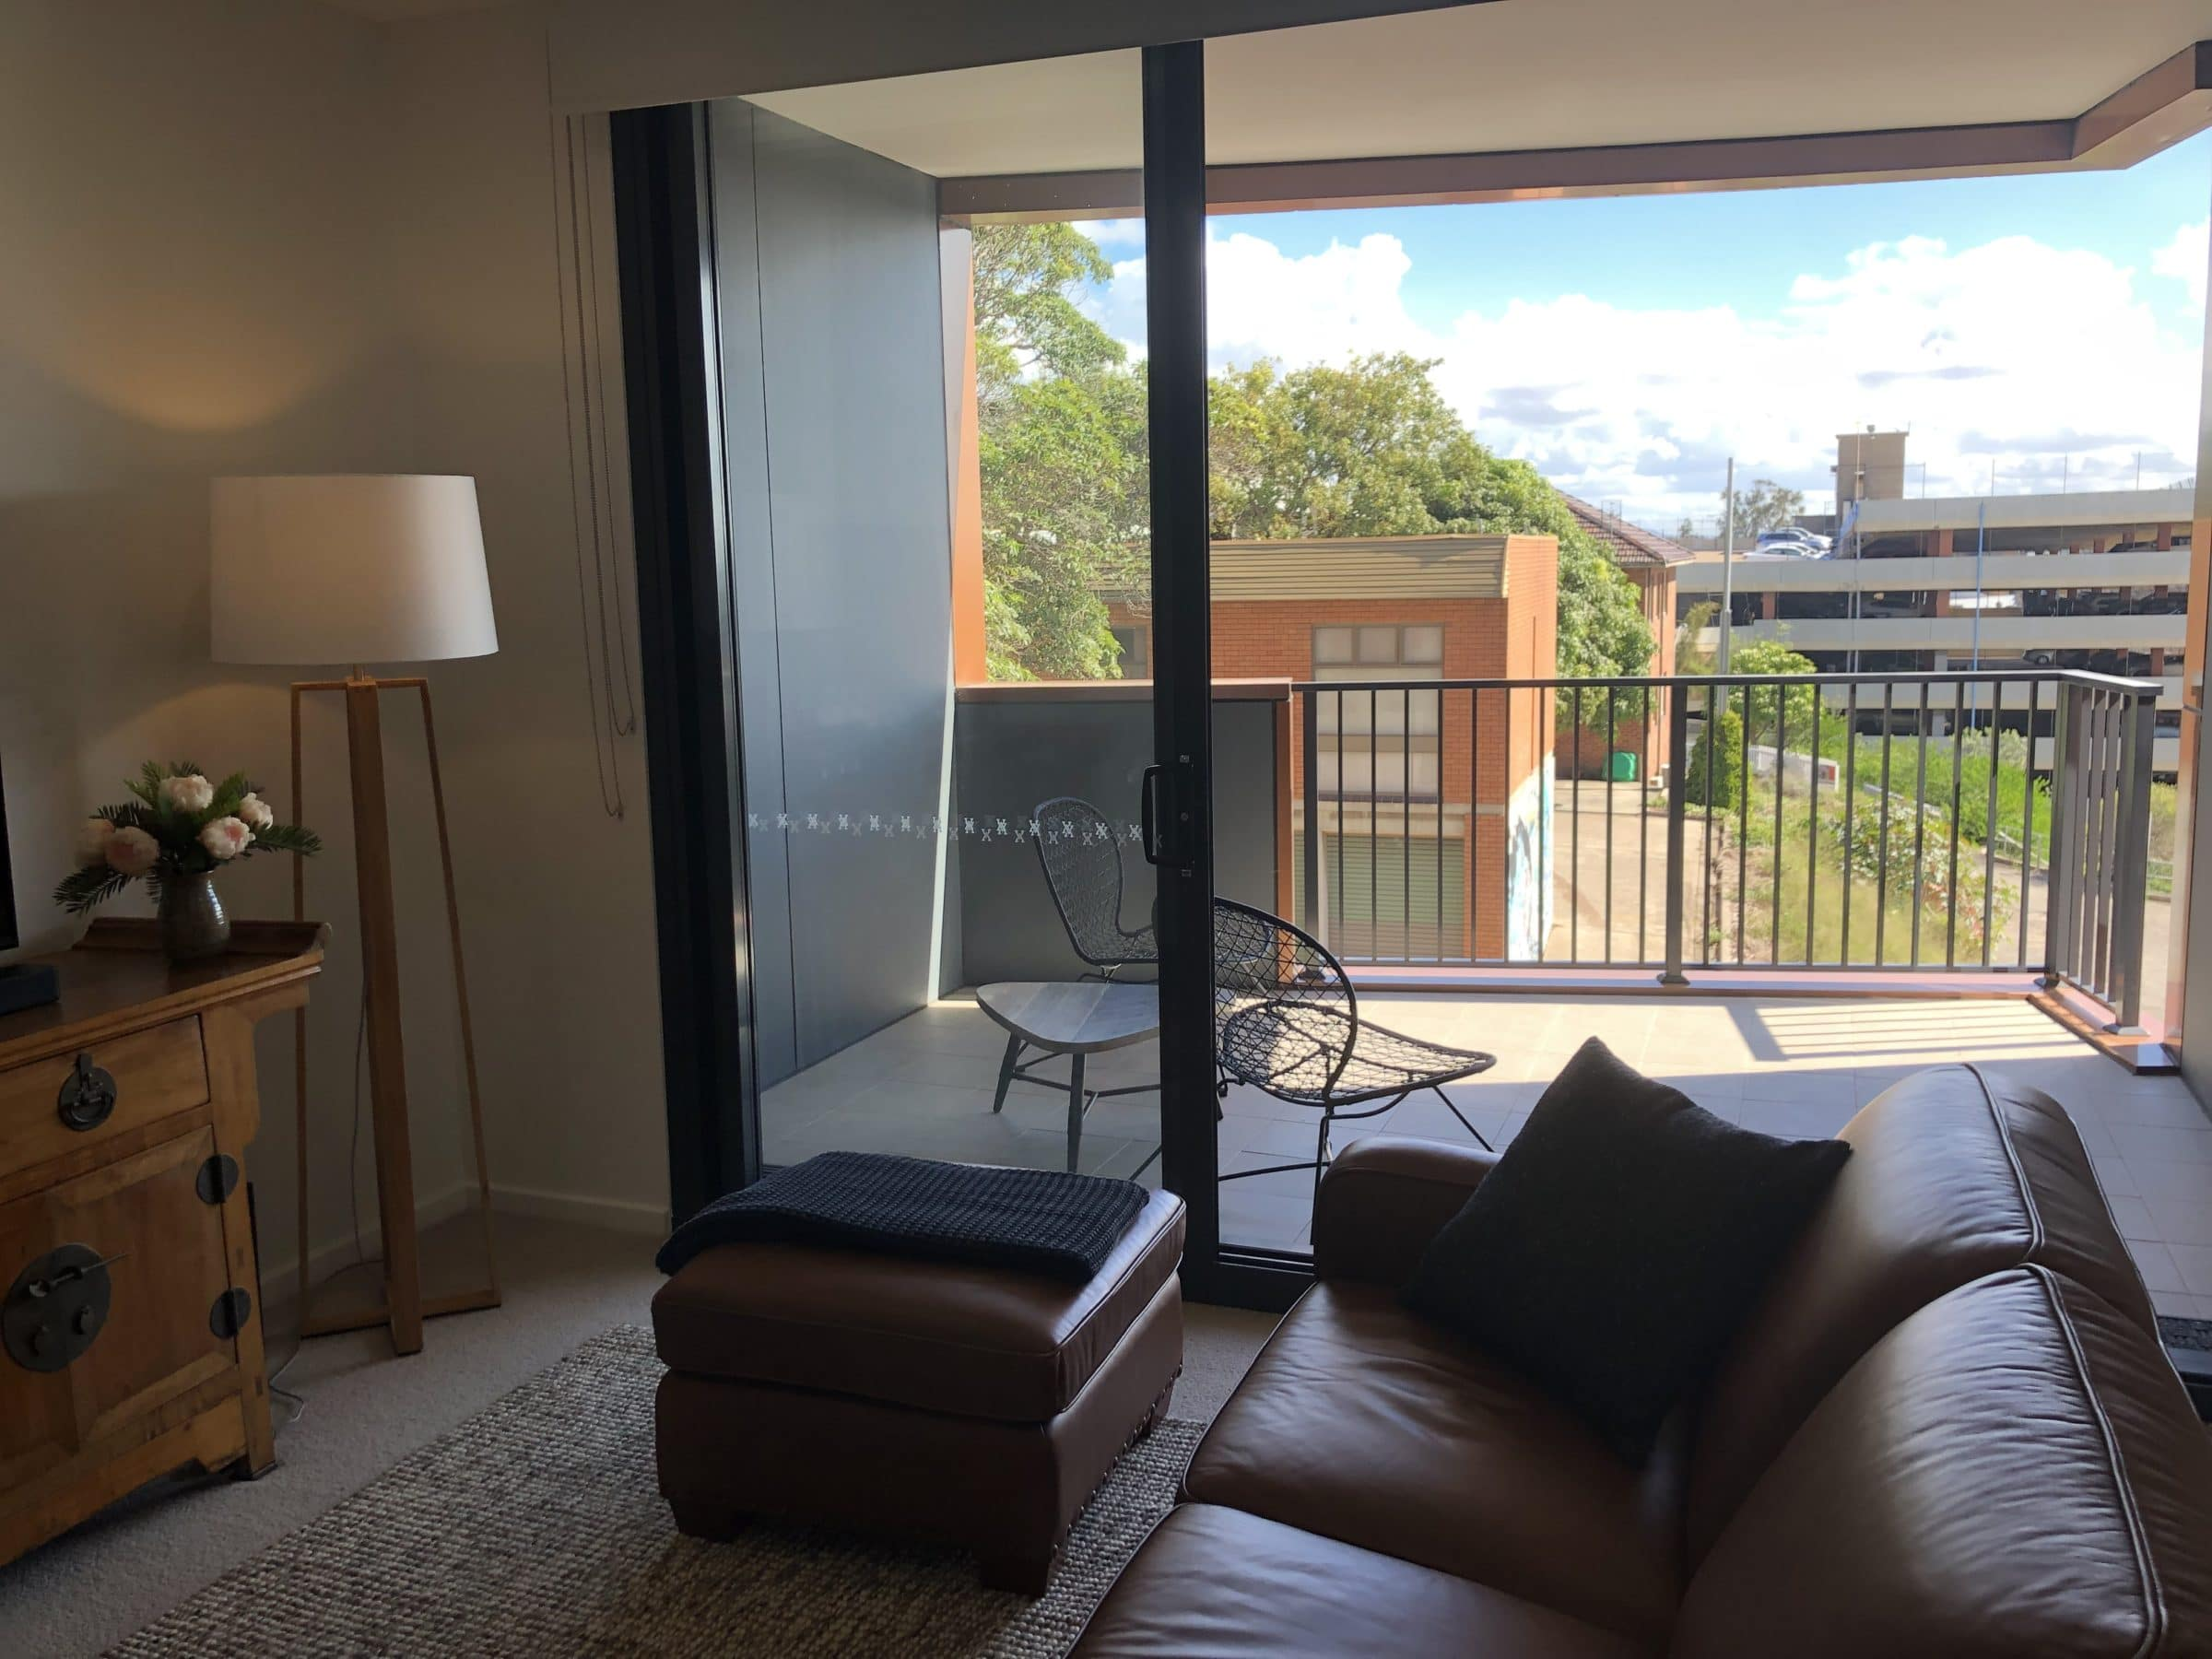 Herald Apartments - https://www.newcastleapartments.com.au/wp-content/uploads/2019/12/Herald-scaled.jpg